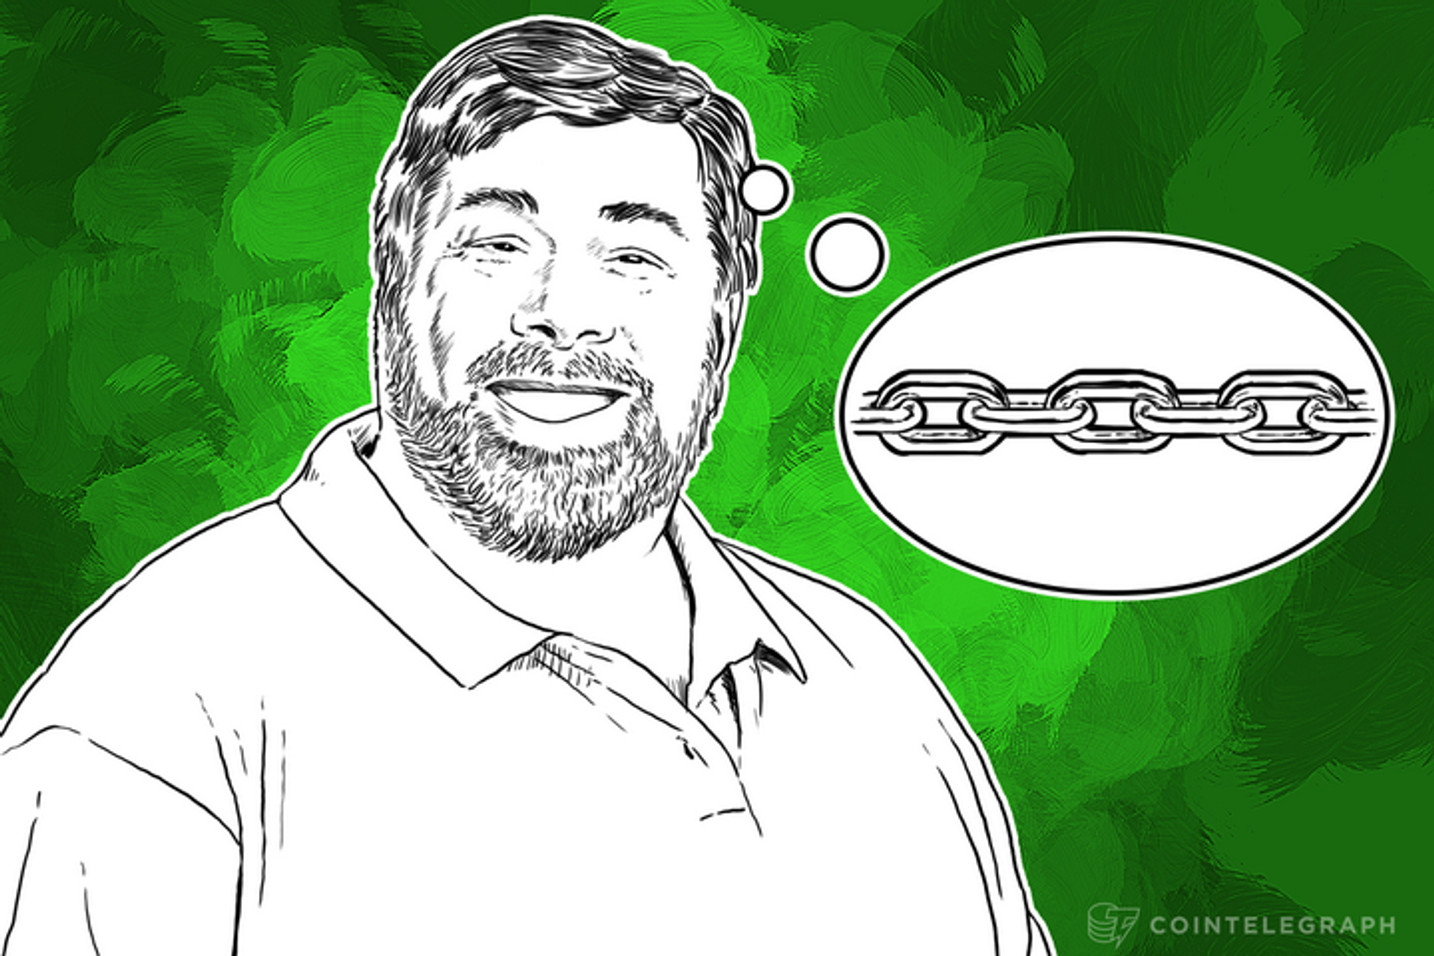 Apple Co-Founder Steve Wozniak Joins Next Gen Payment Startup Planet Capital